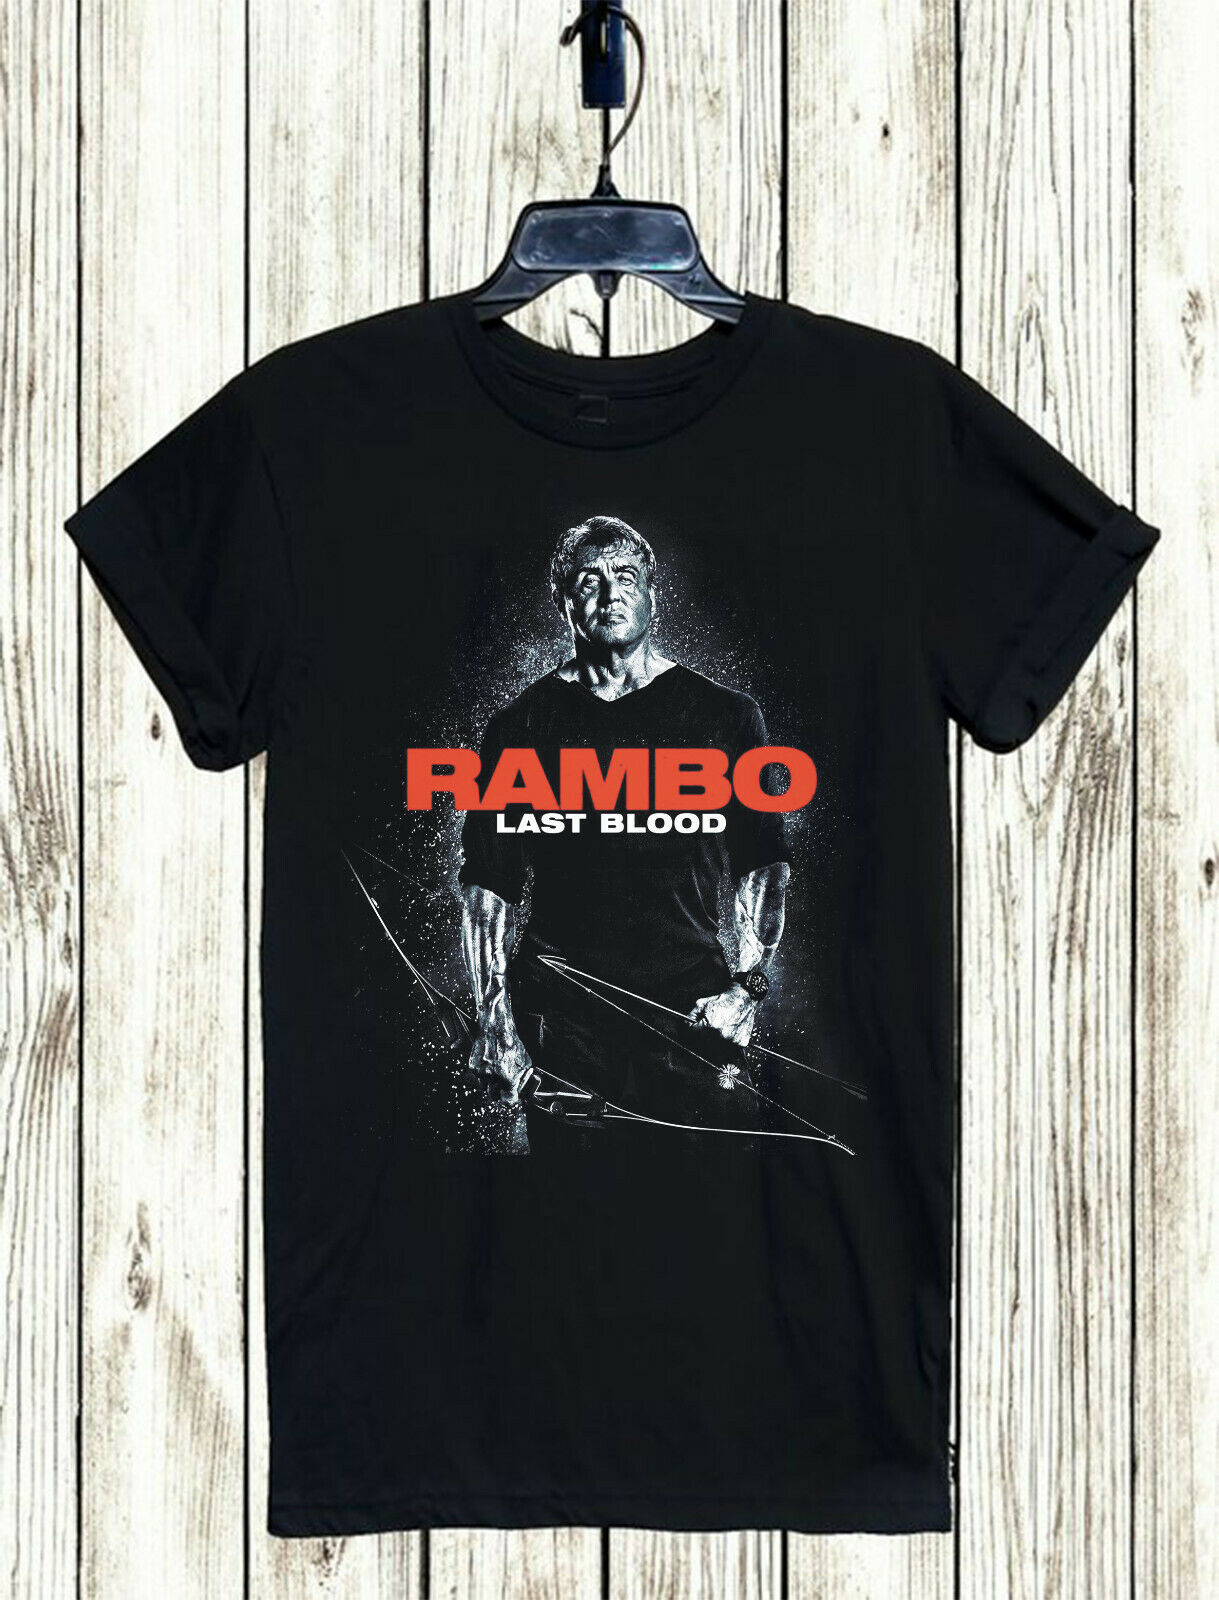 RAMBO LAST BLOOD MOVIE T-SHIRT XS-5XL UNISEX FREE SHIPPING STALLONE FIGHT CULT